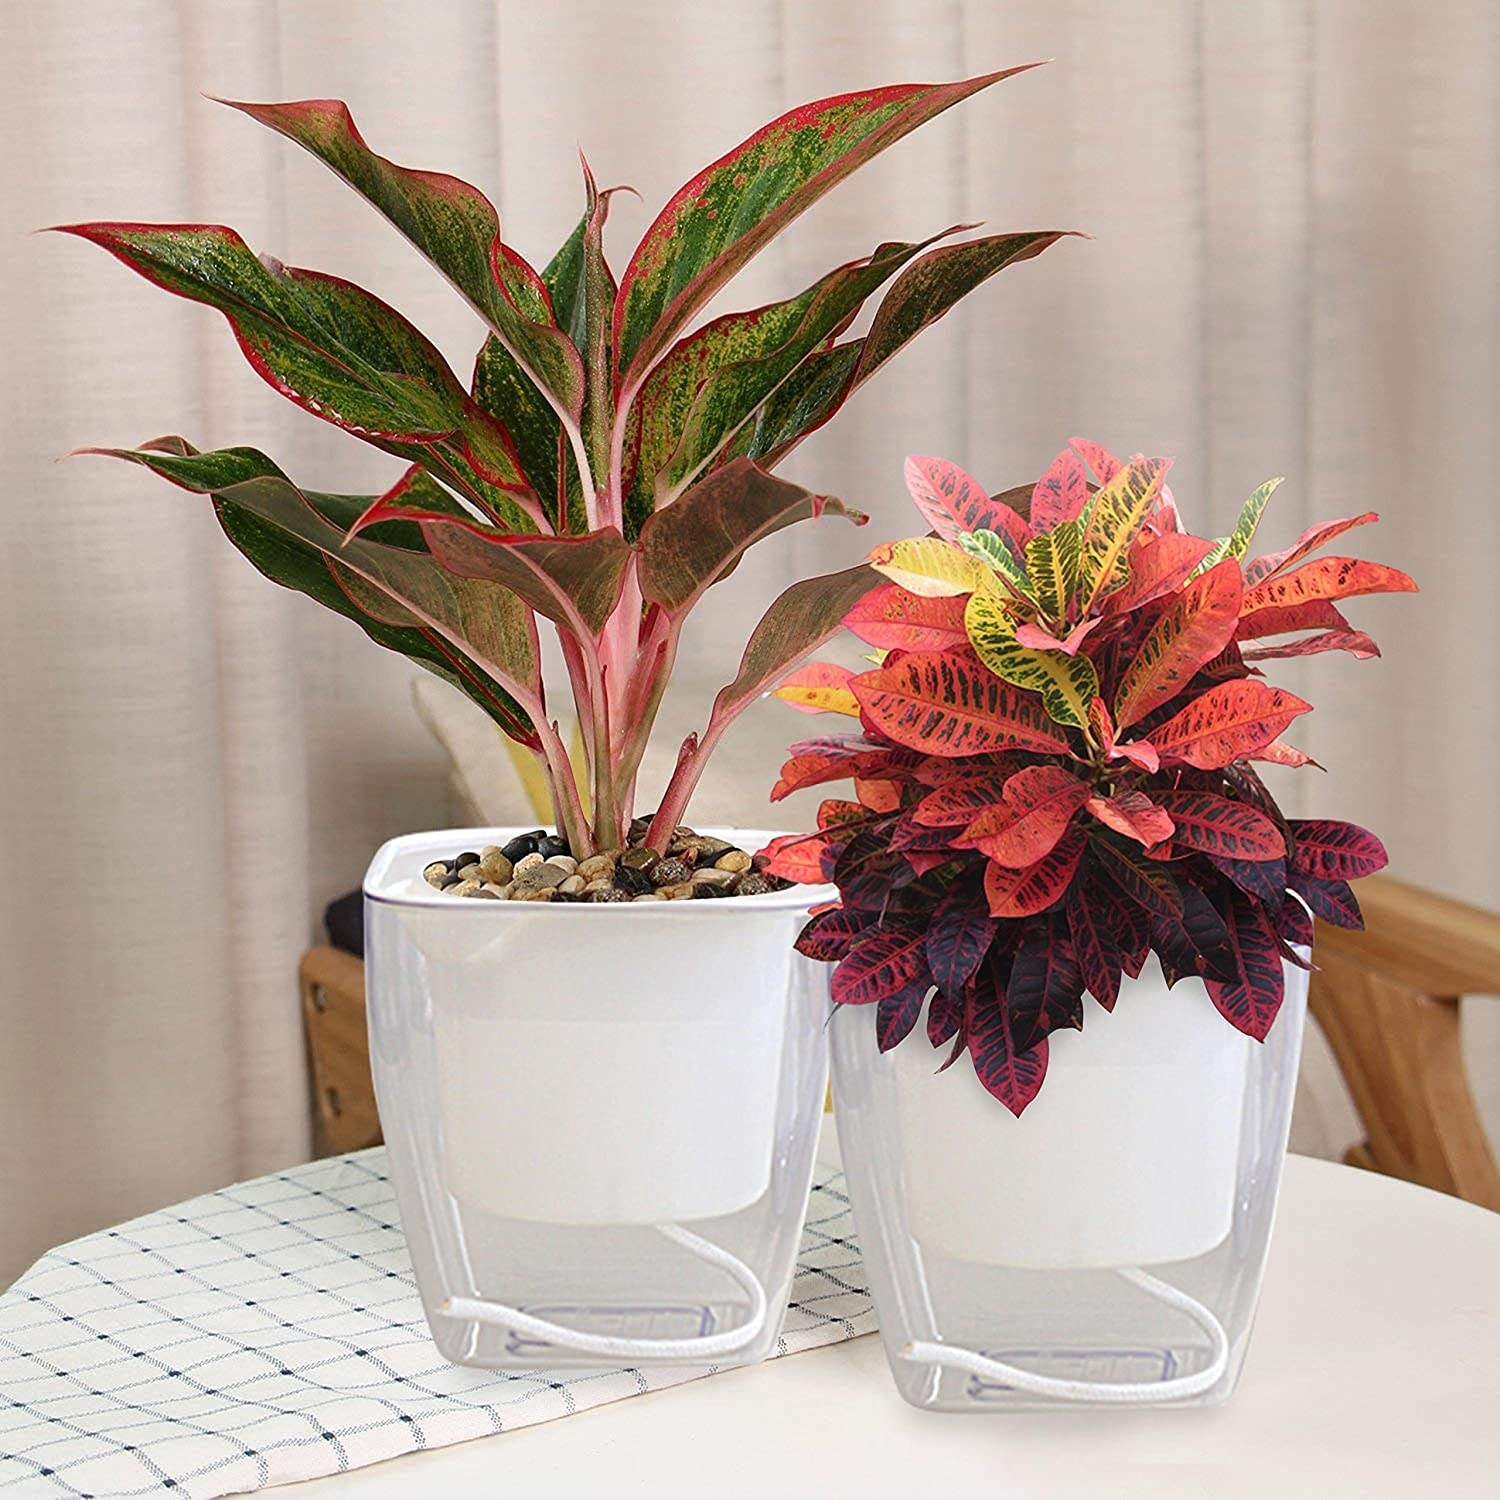 Two self-watering flower pots on a table